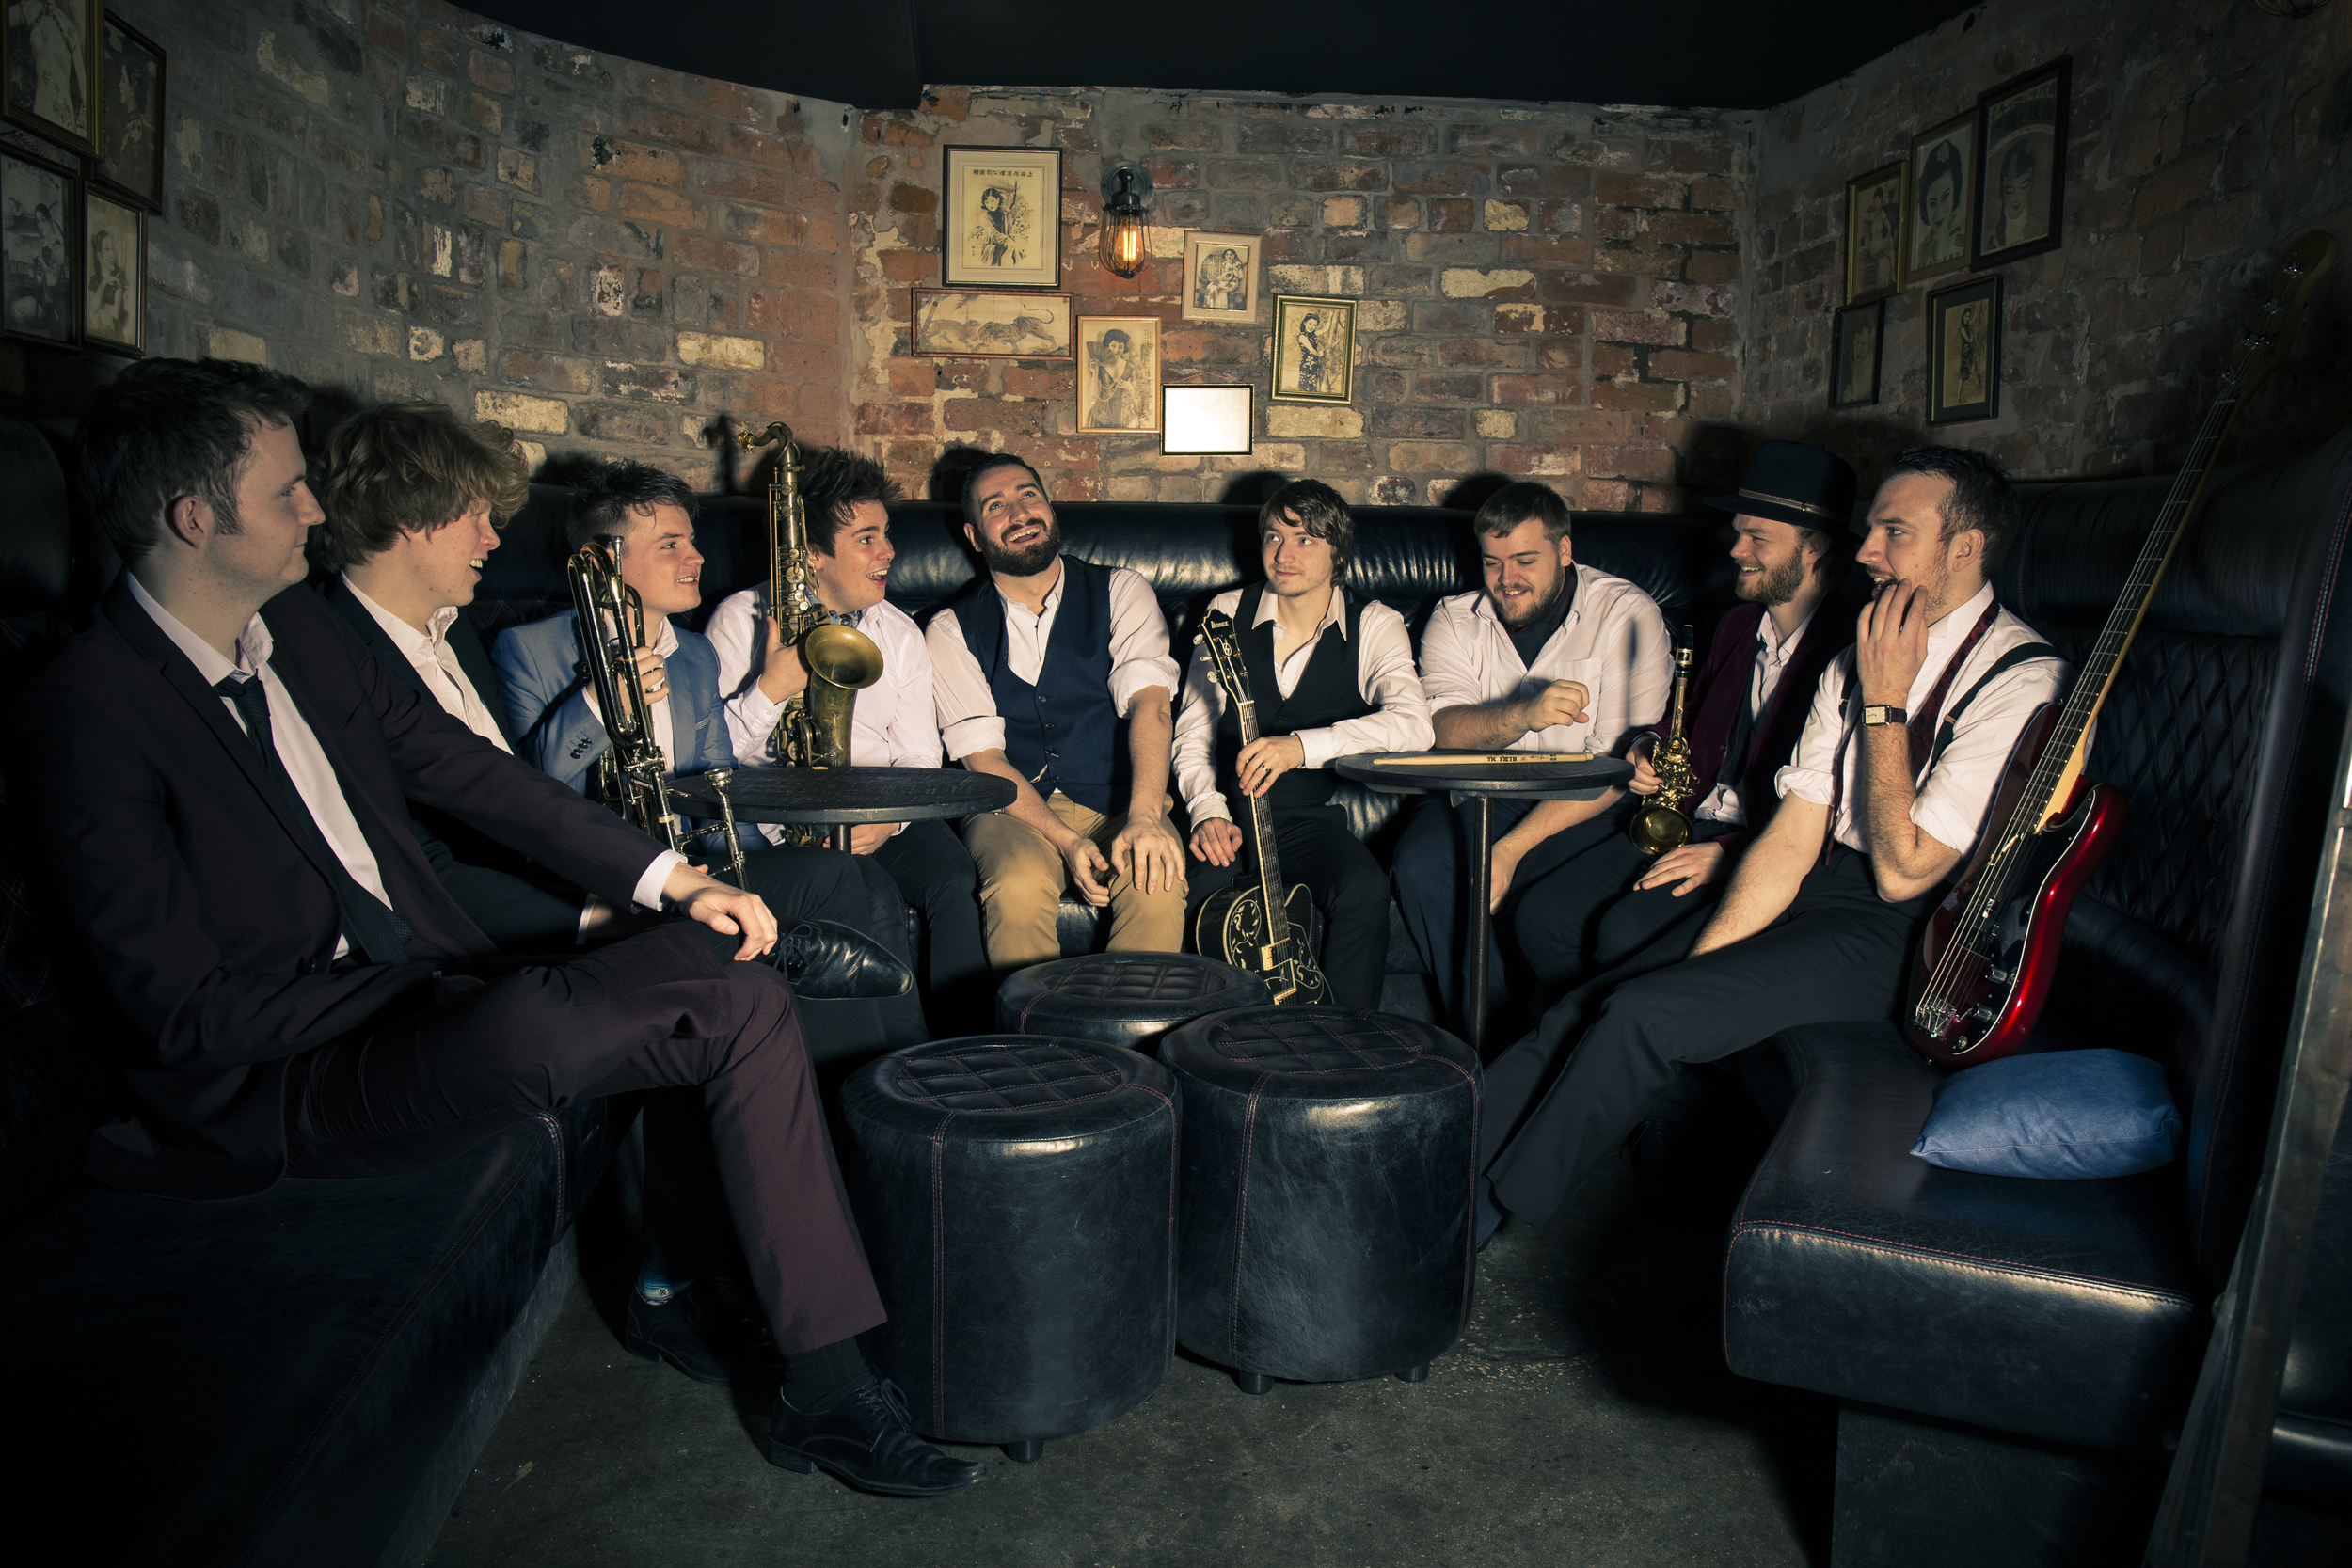 The Snazzy Swing Band